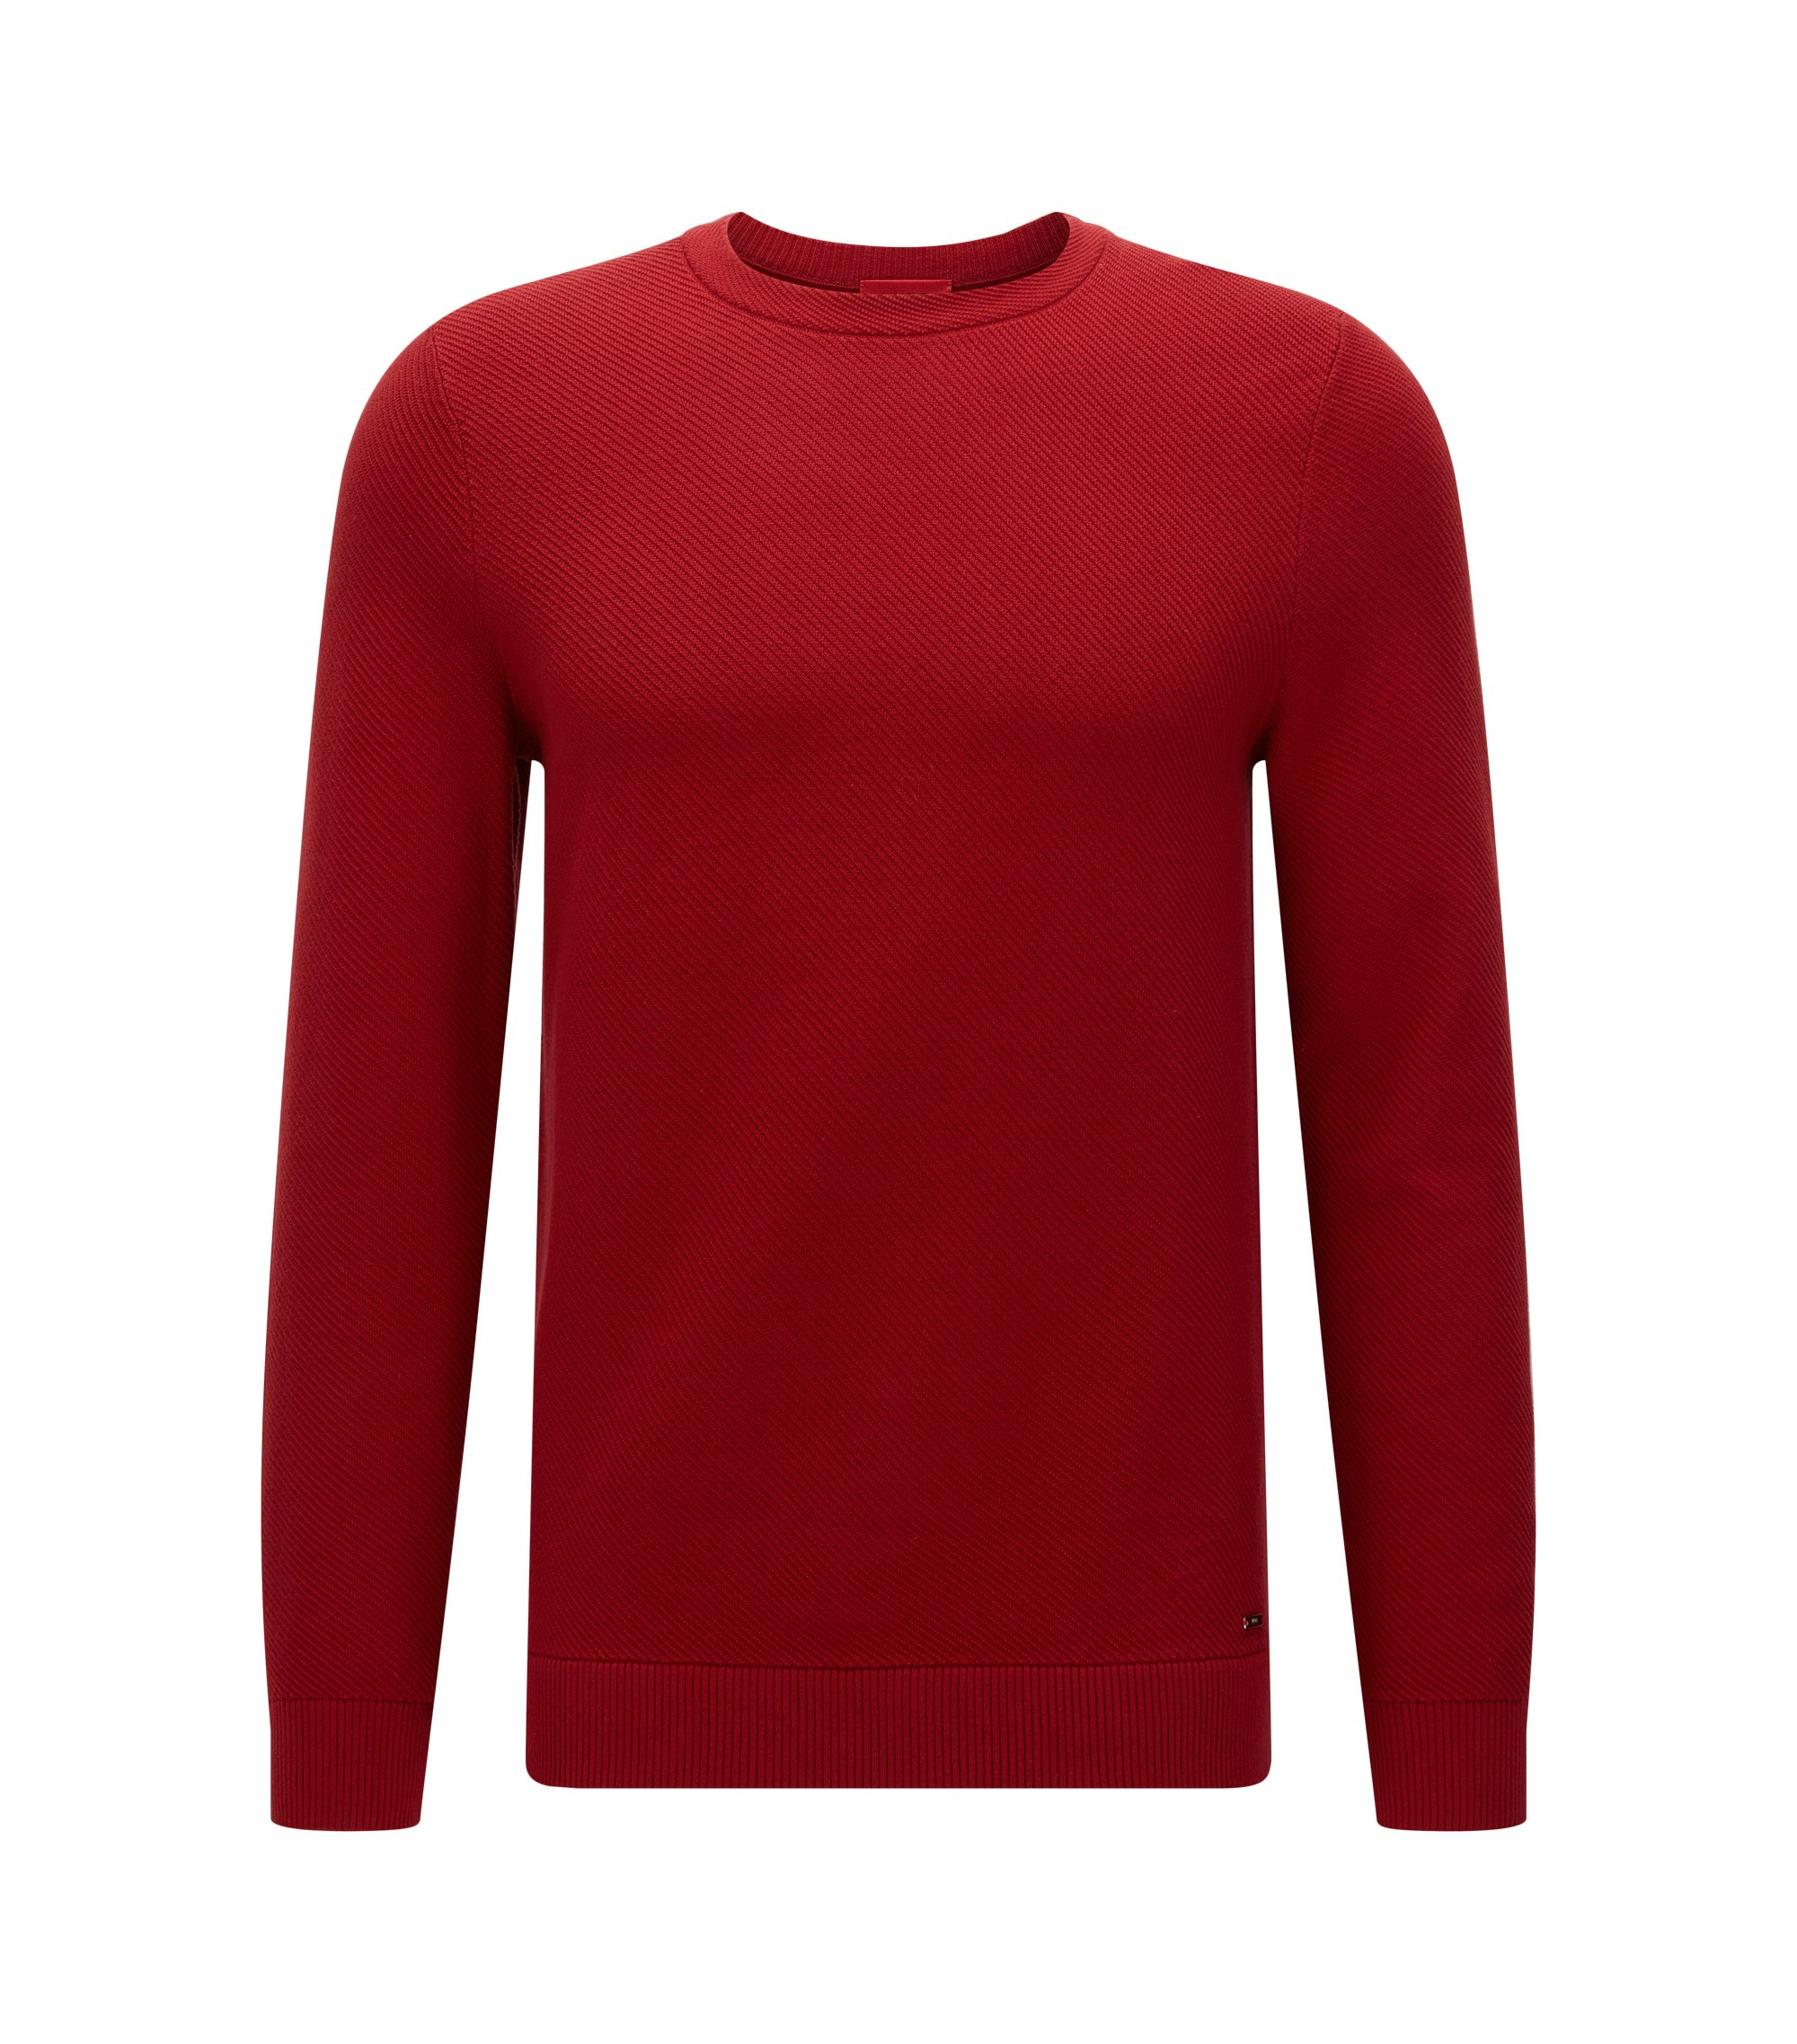 Relaxed-fit trui met diagonale ribstructuur, Donkerrood